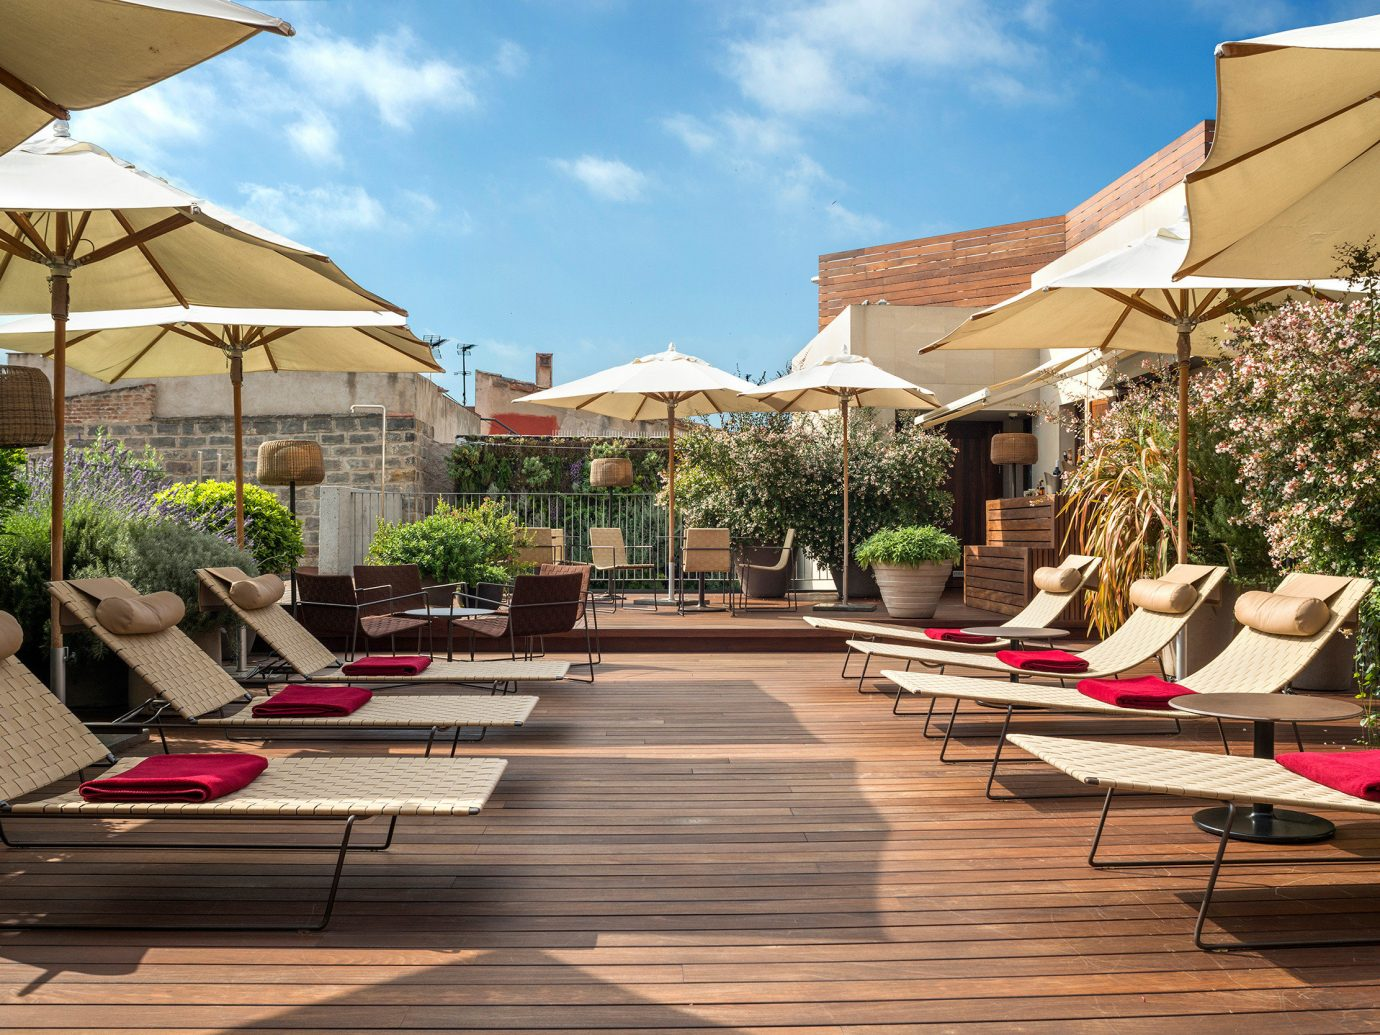 Boutique Boutique Hotels City Deck Hip Hotels Luxury Modern Rooftop sky building outdoor leisure Resort outdoor structure backyard estate home Courtyard swimming pool